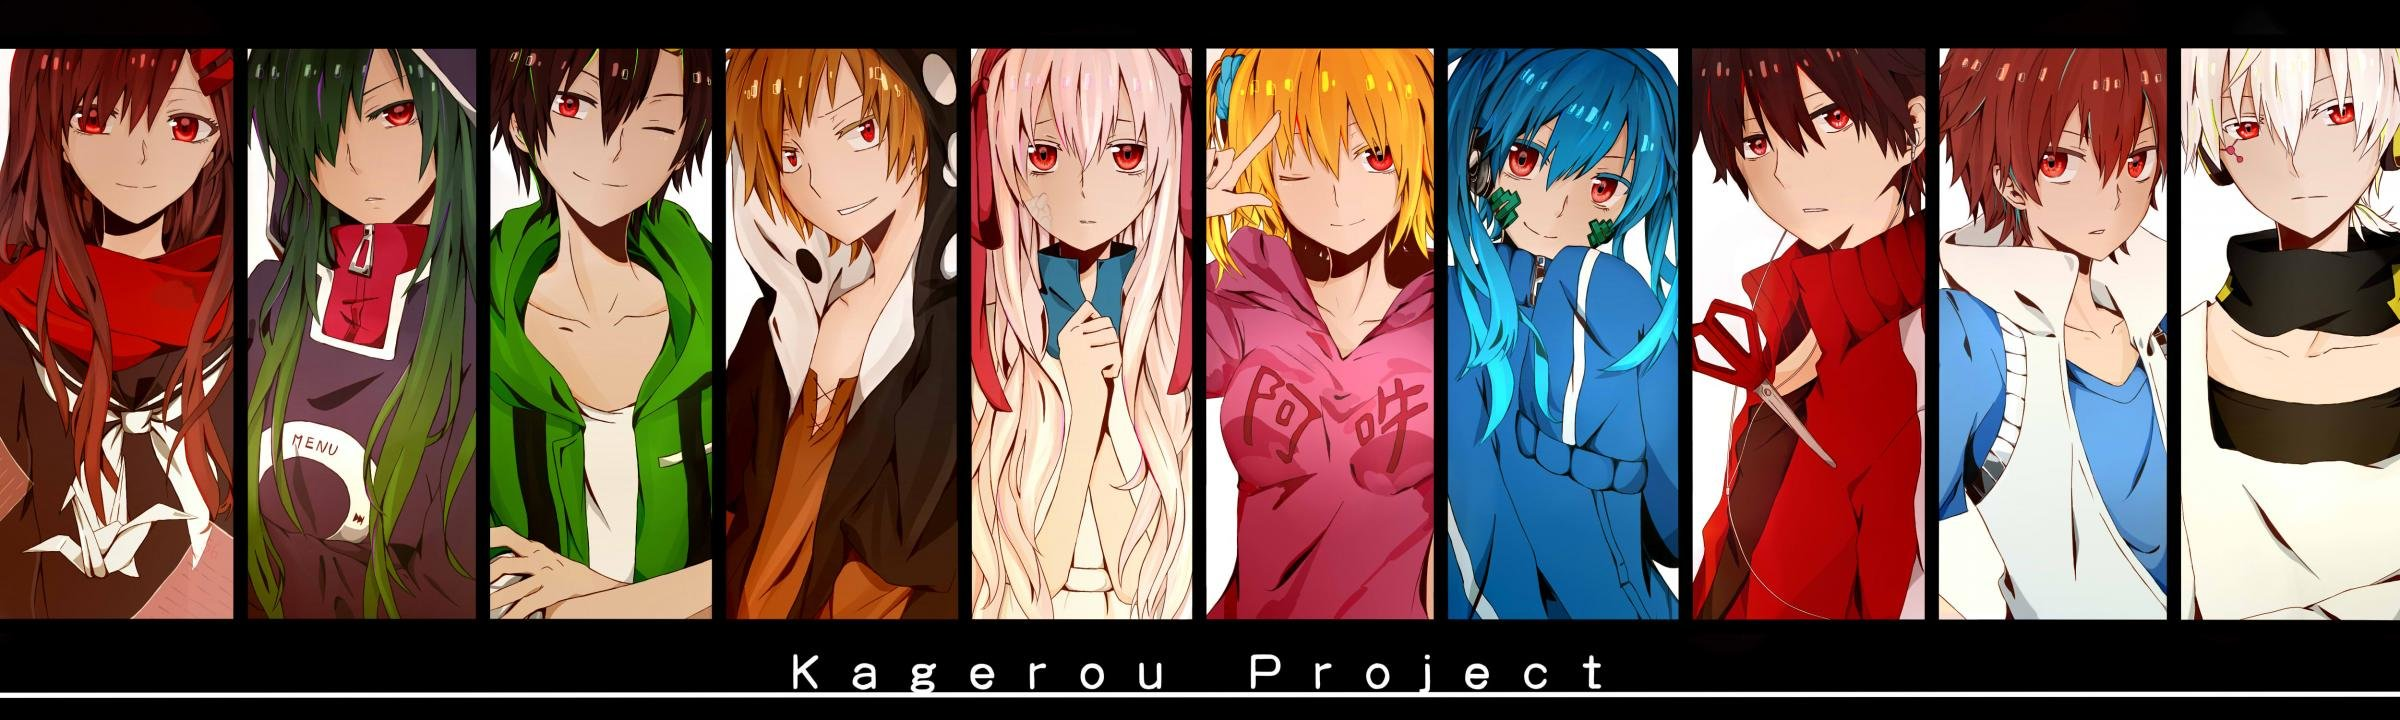 High resolution Kagerou Project dual screen 2400x720 background ID:134332 for PC